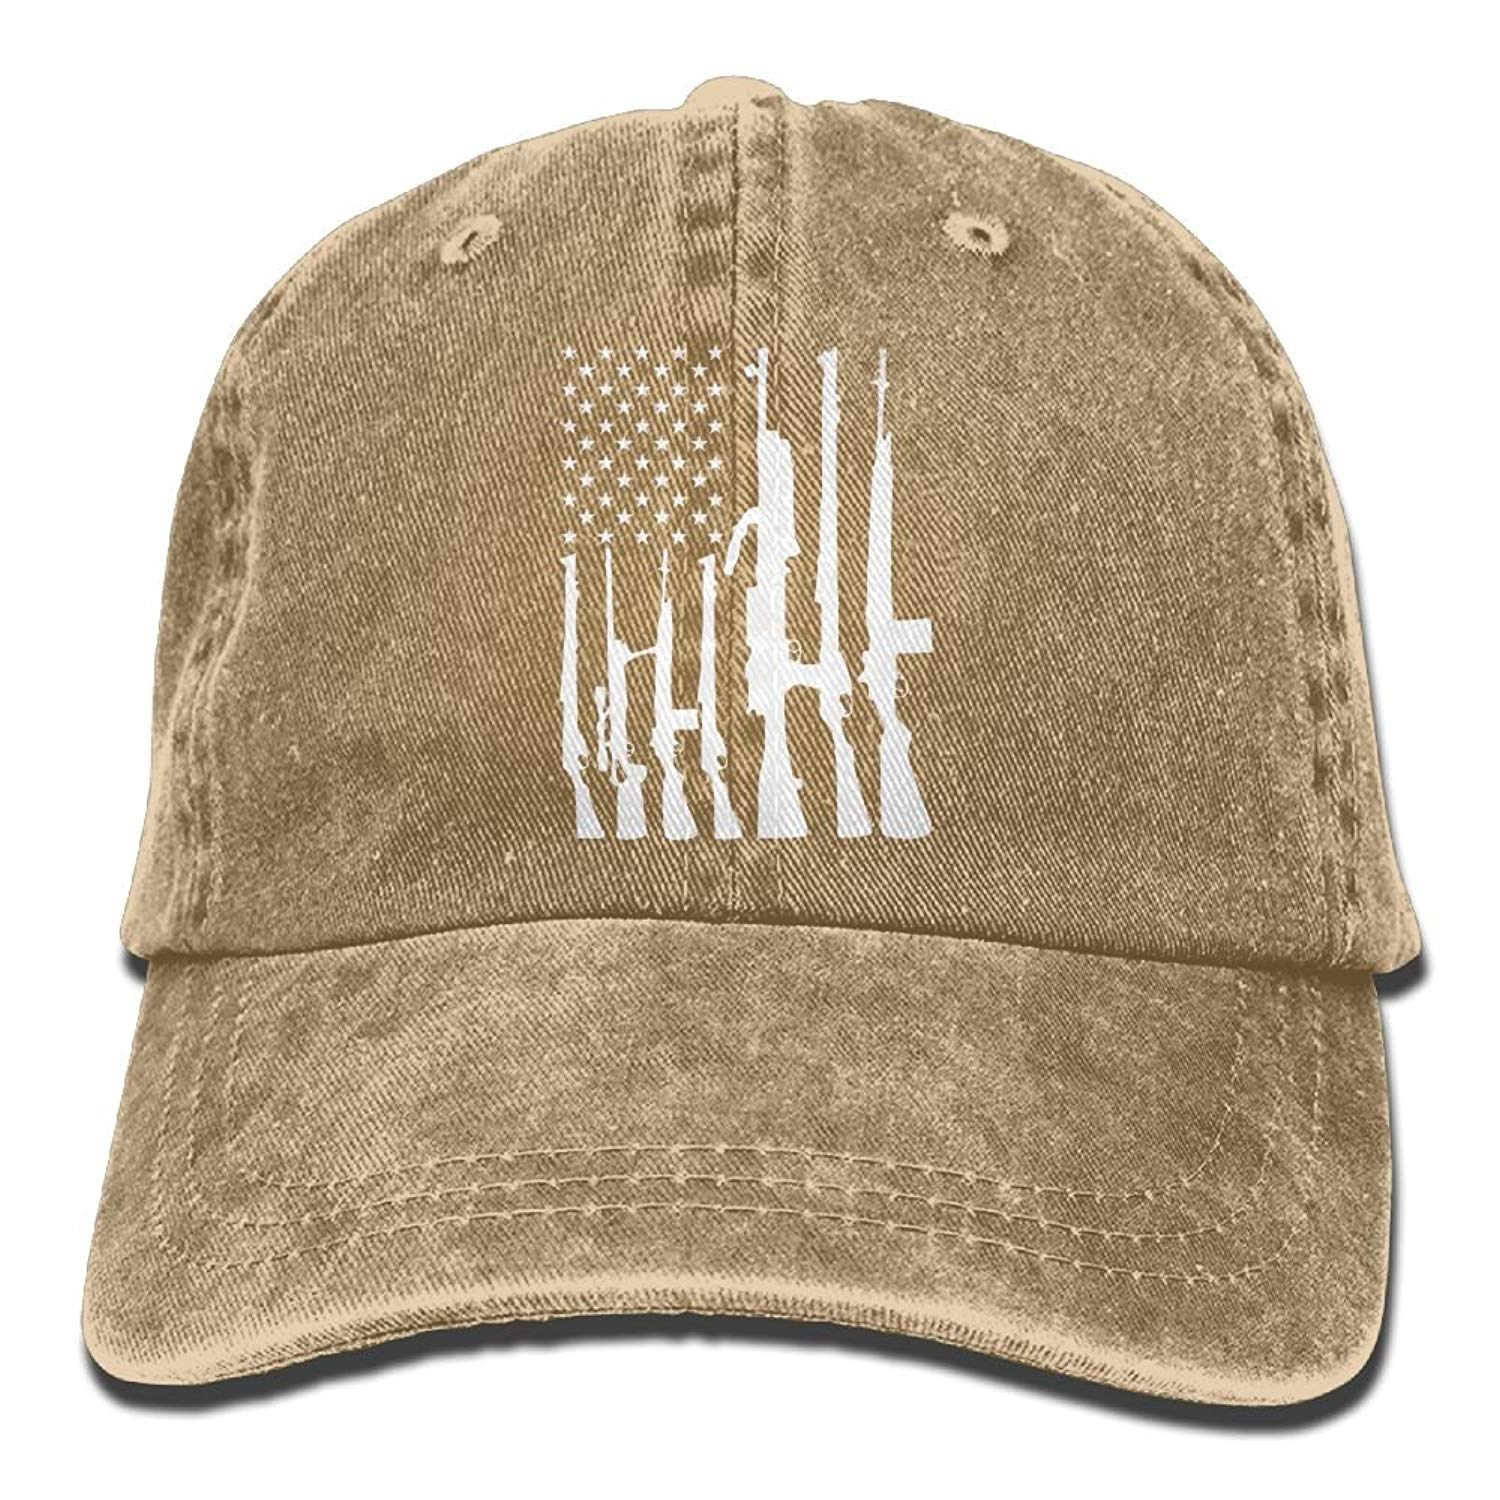 Enpengd Never Disarm Guns USA Flag Funny Men & Women Adjustable Cowboy Cotton Baseball Hat Natural